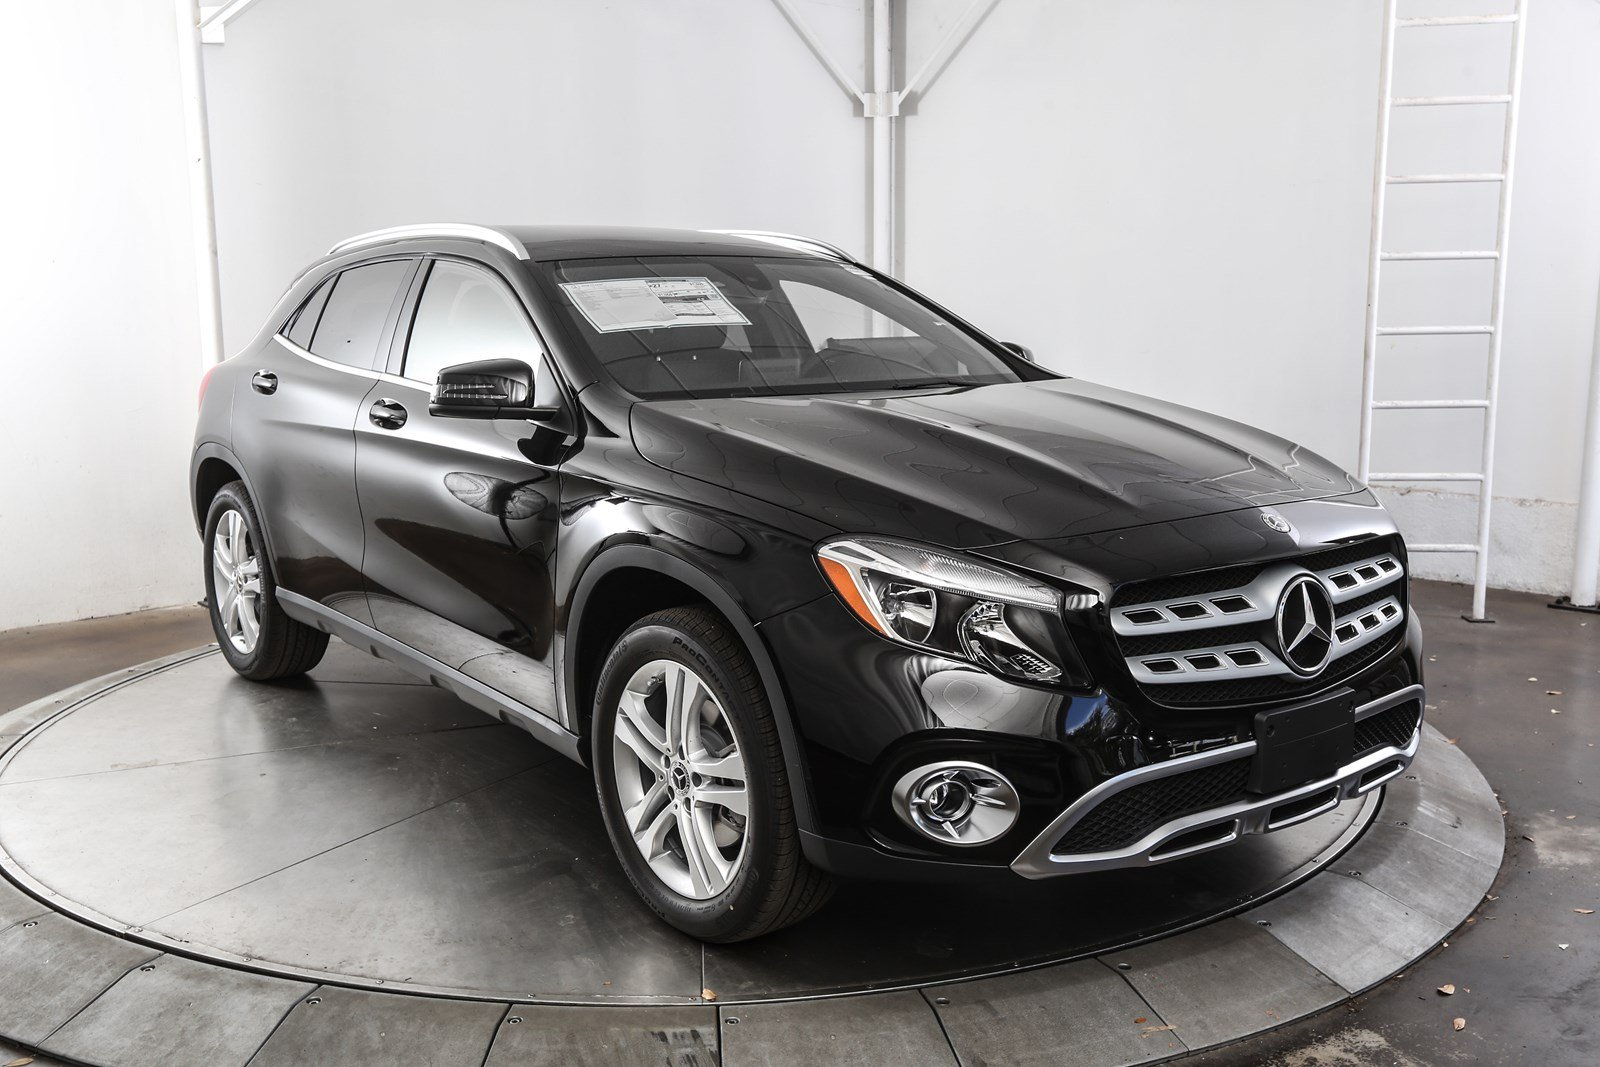 New 2018 mercedes benz gla gla 250 suv in austin m57775 for Mercedes benz gla 250 price